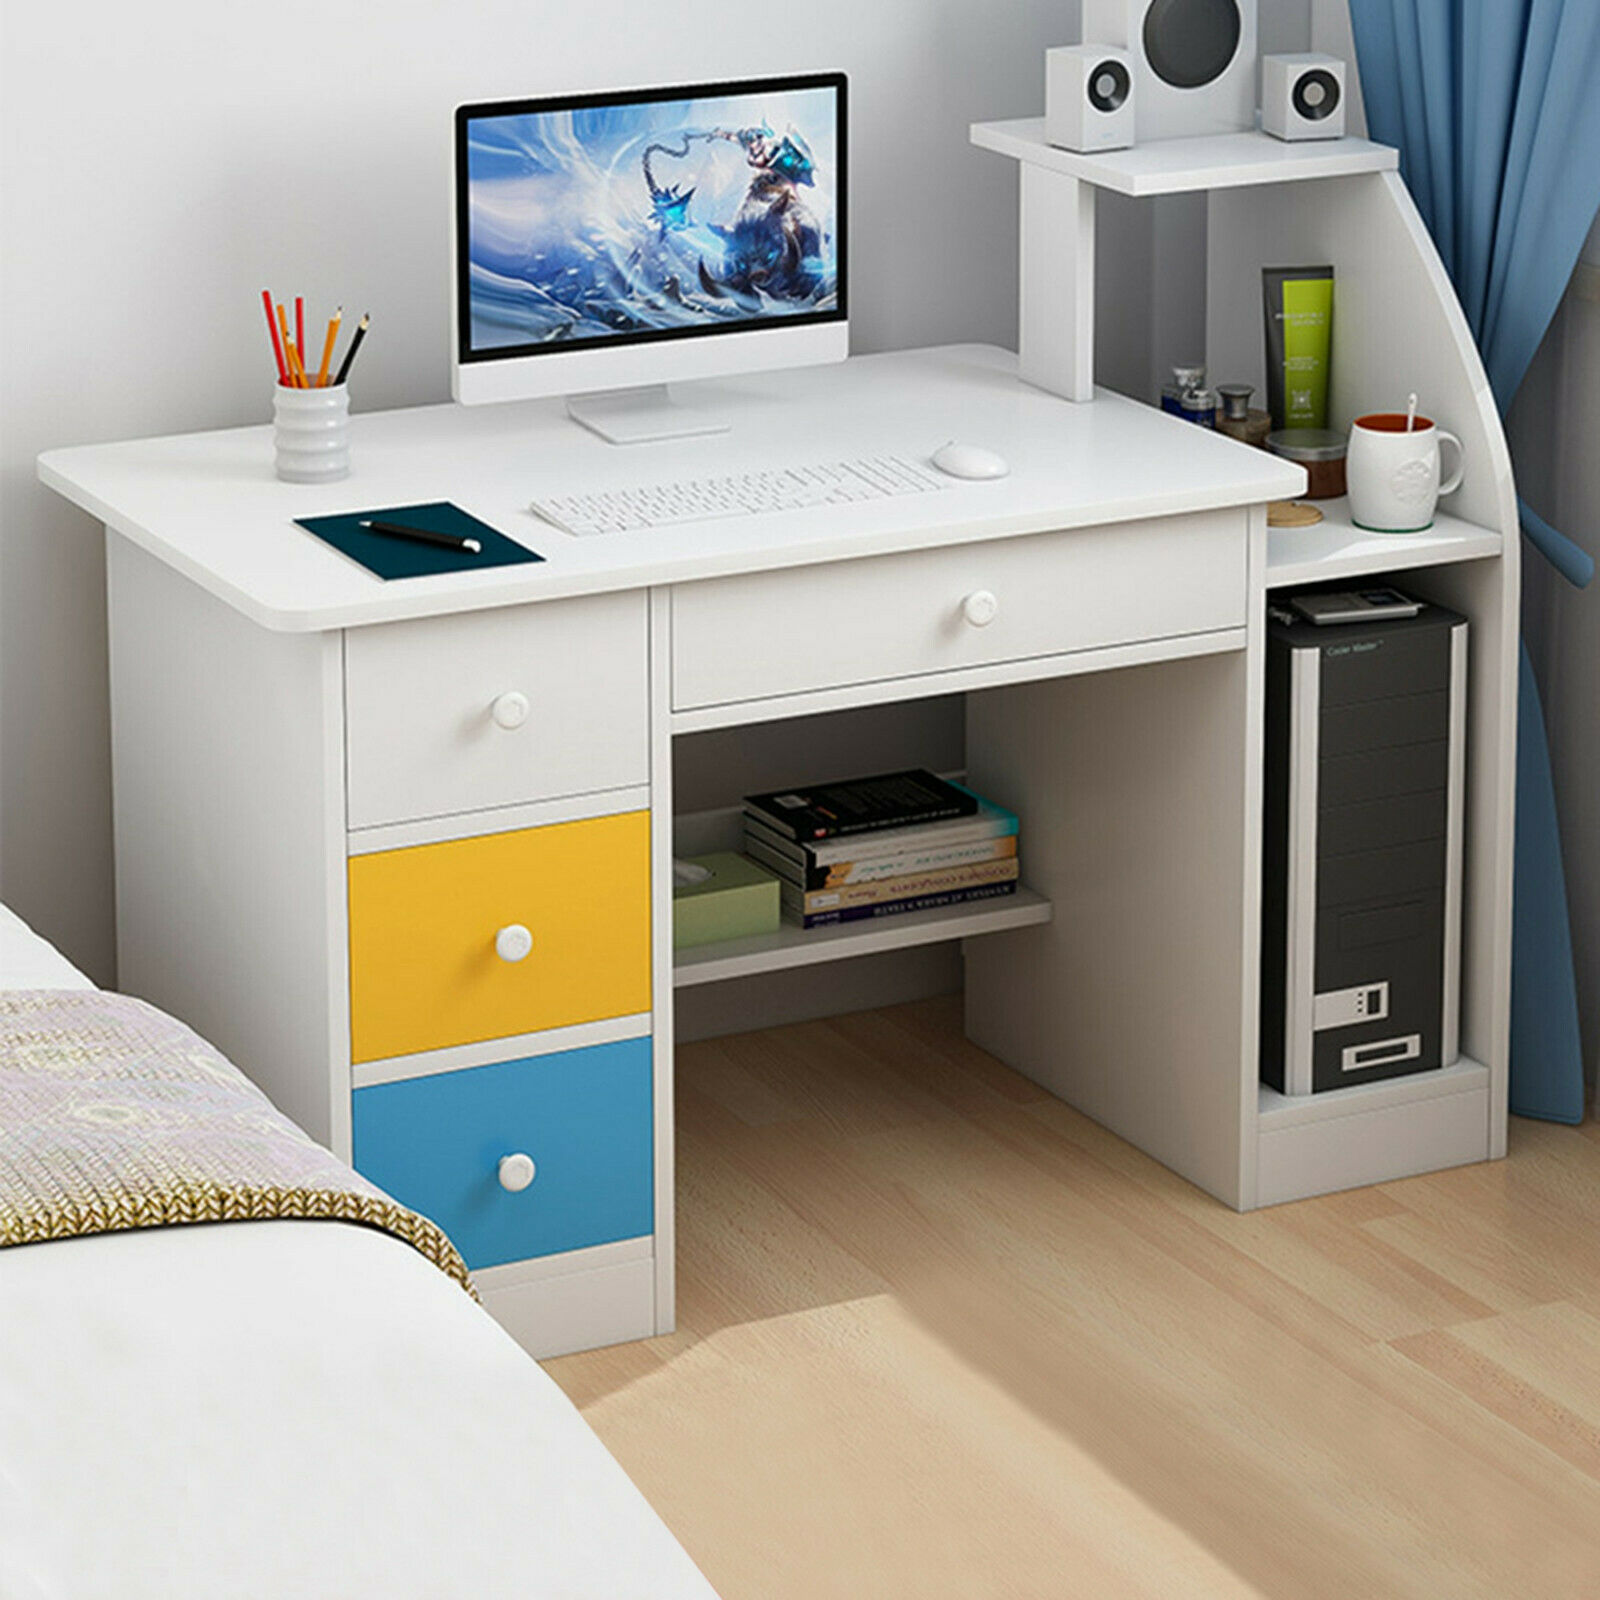 Corner Desk Stand Small Kitchen White Wood Table Top With Drawers Shelf For Kids For Sale Online Ebay